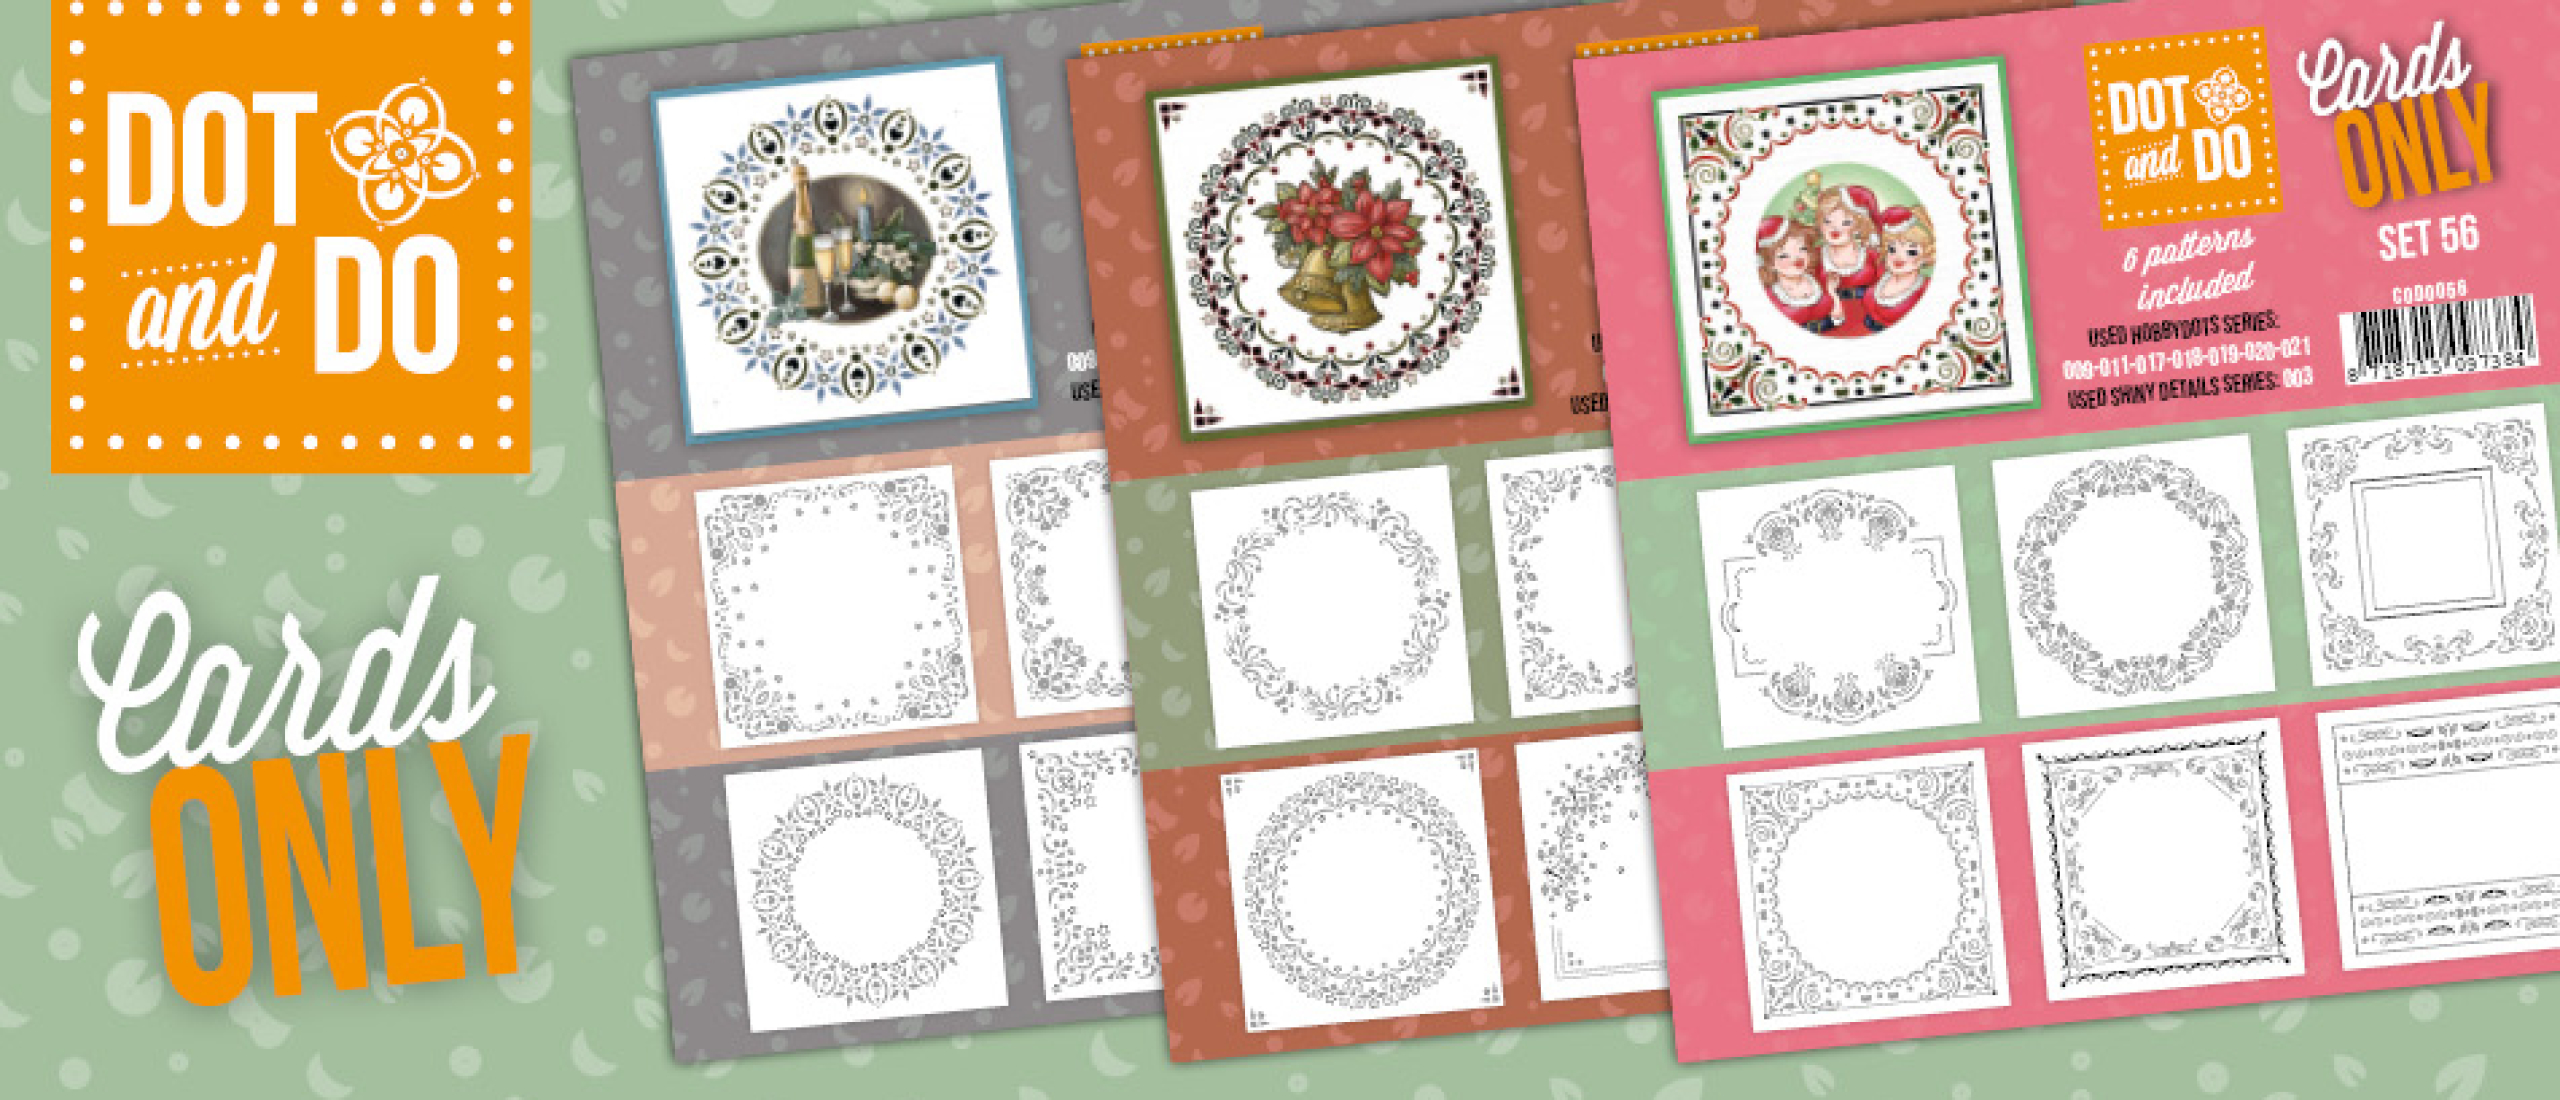 Dot and Do - Cards Only - Set 54-55-56